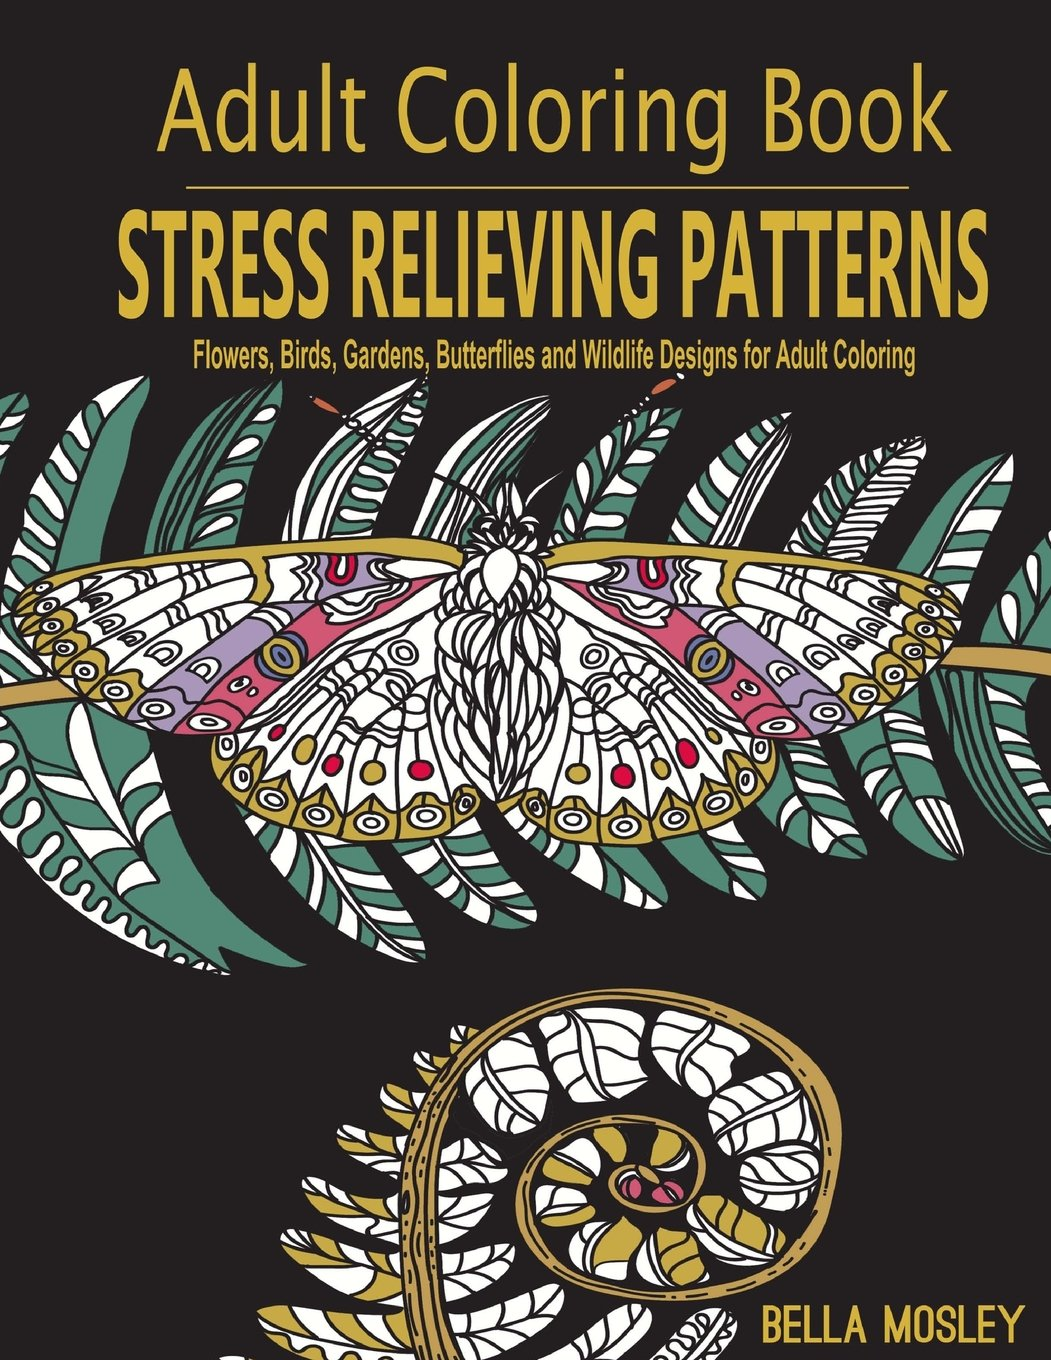 Amazon Adult Coloring Book Stress Relieving Patterns Flowers Birds Gardens Butterflies And Wildlife Designs For Volume 1